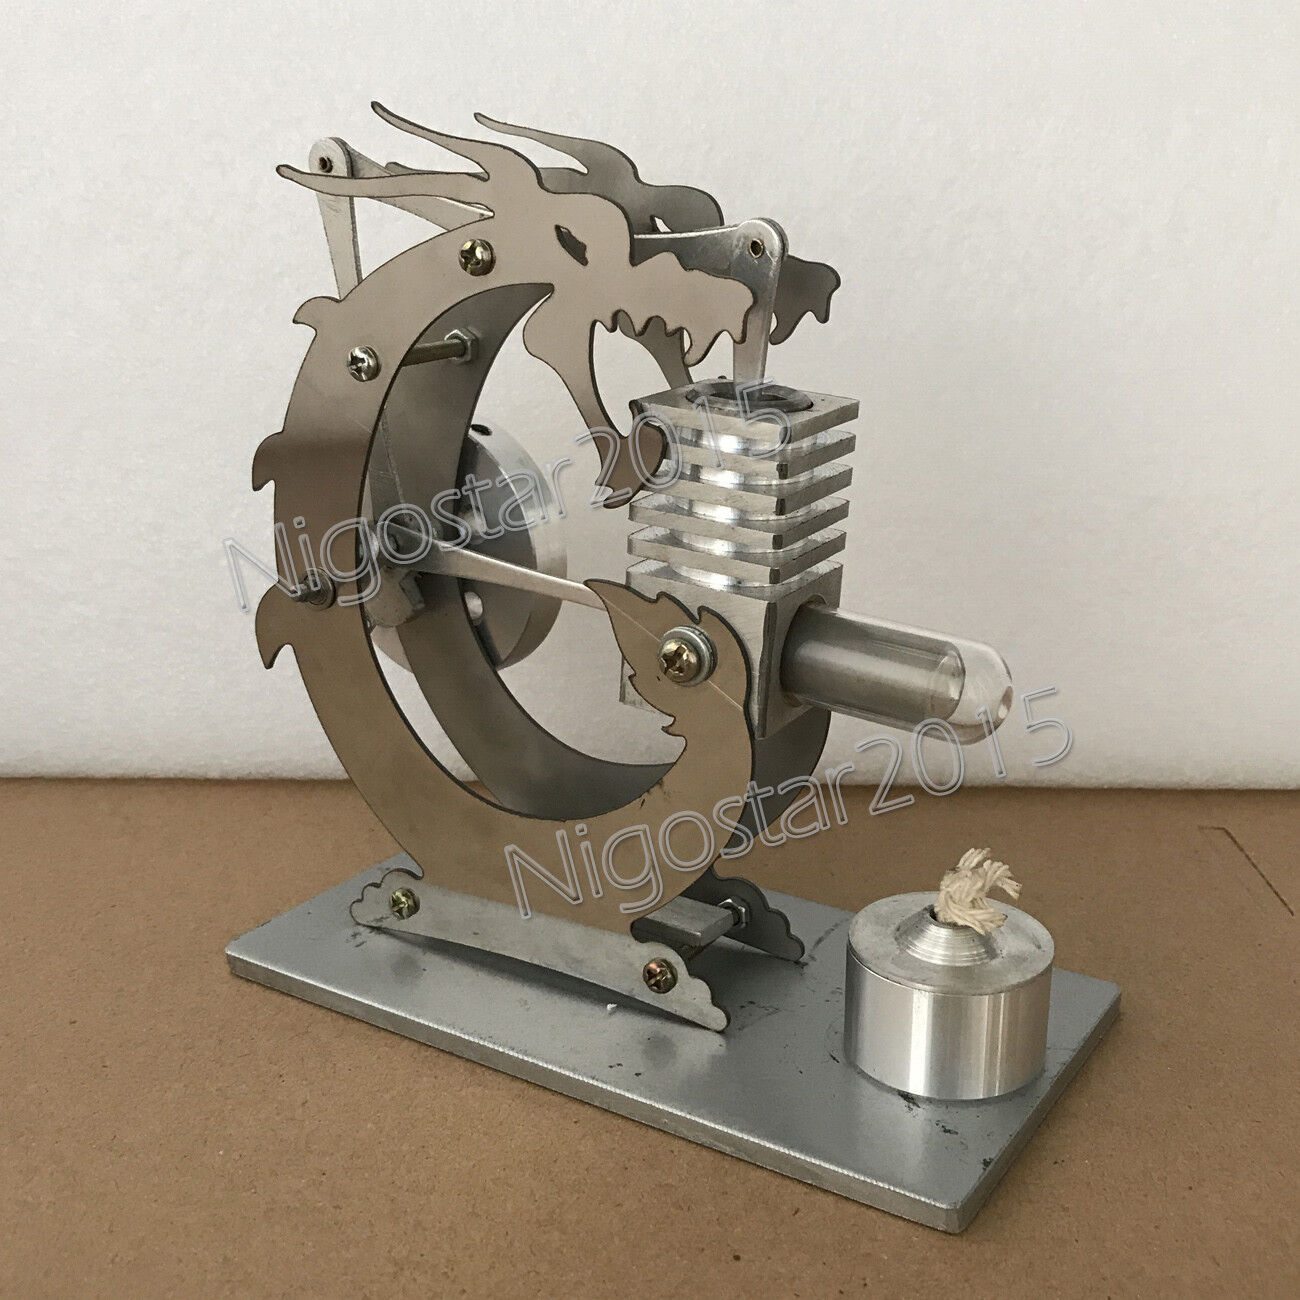 New Powerful Stirling Engine Model Toy Hot Air Engine Motor Metal Decoration Toy